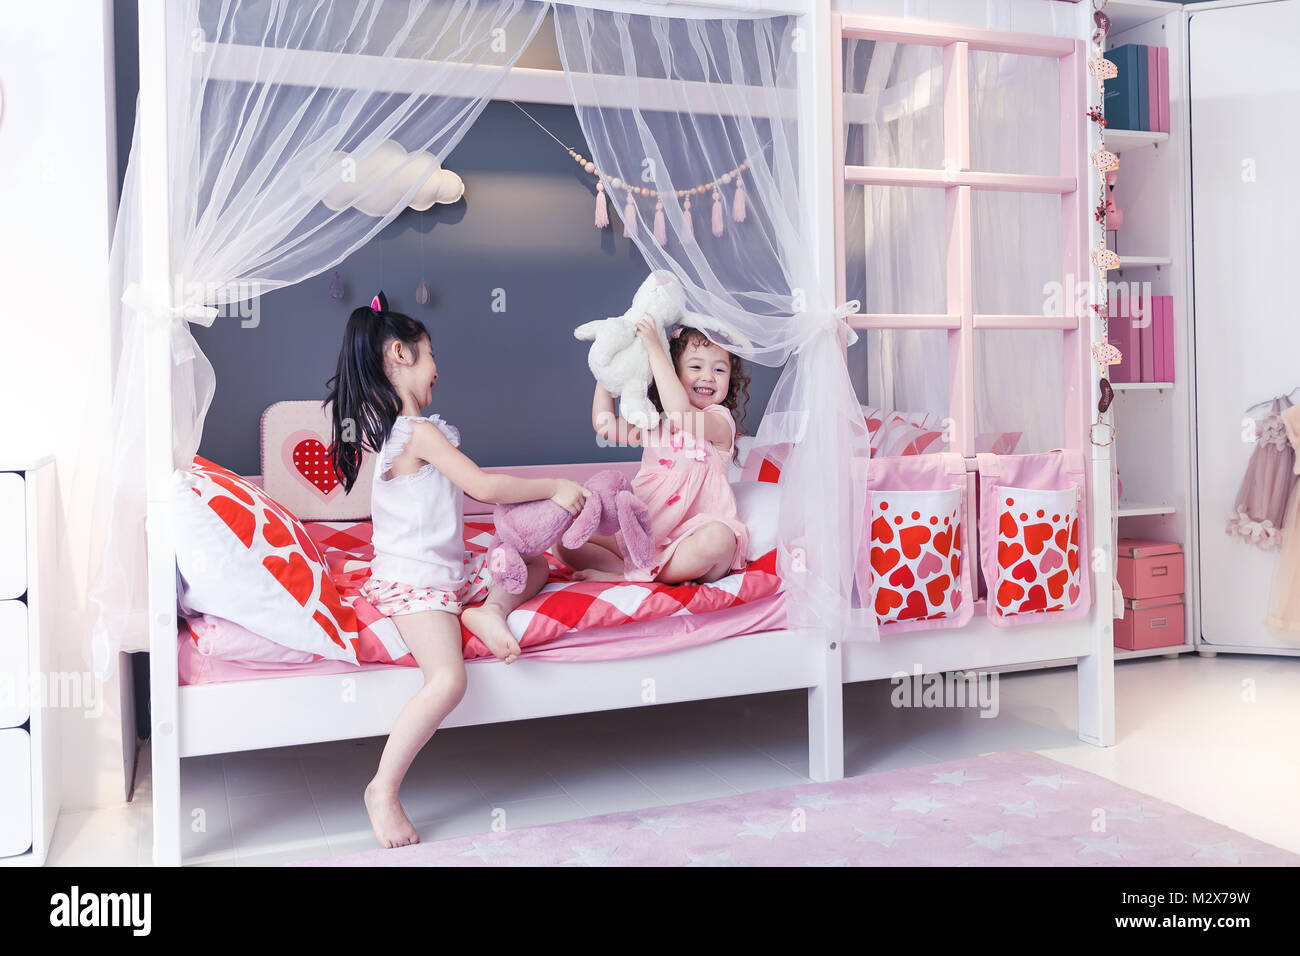 Playing cute girl on the bed - Stock Image